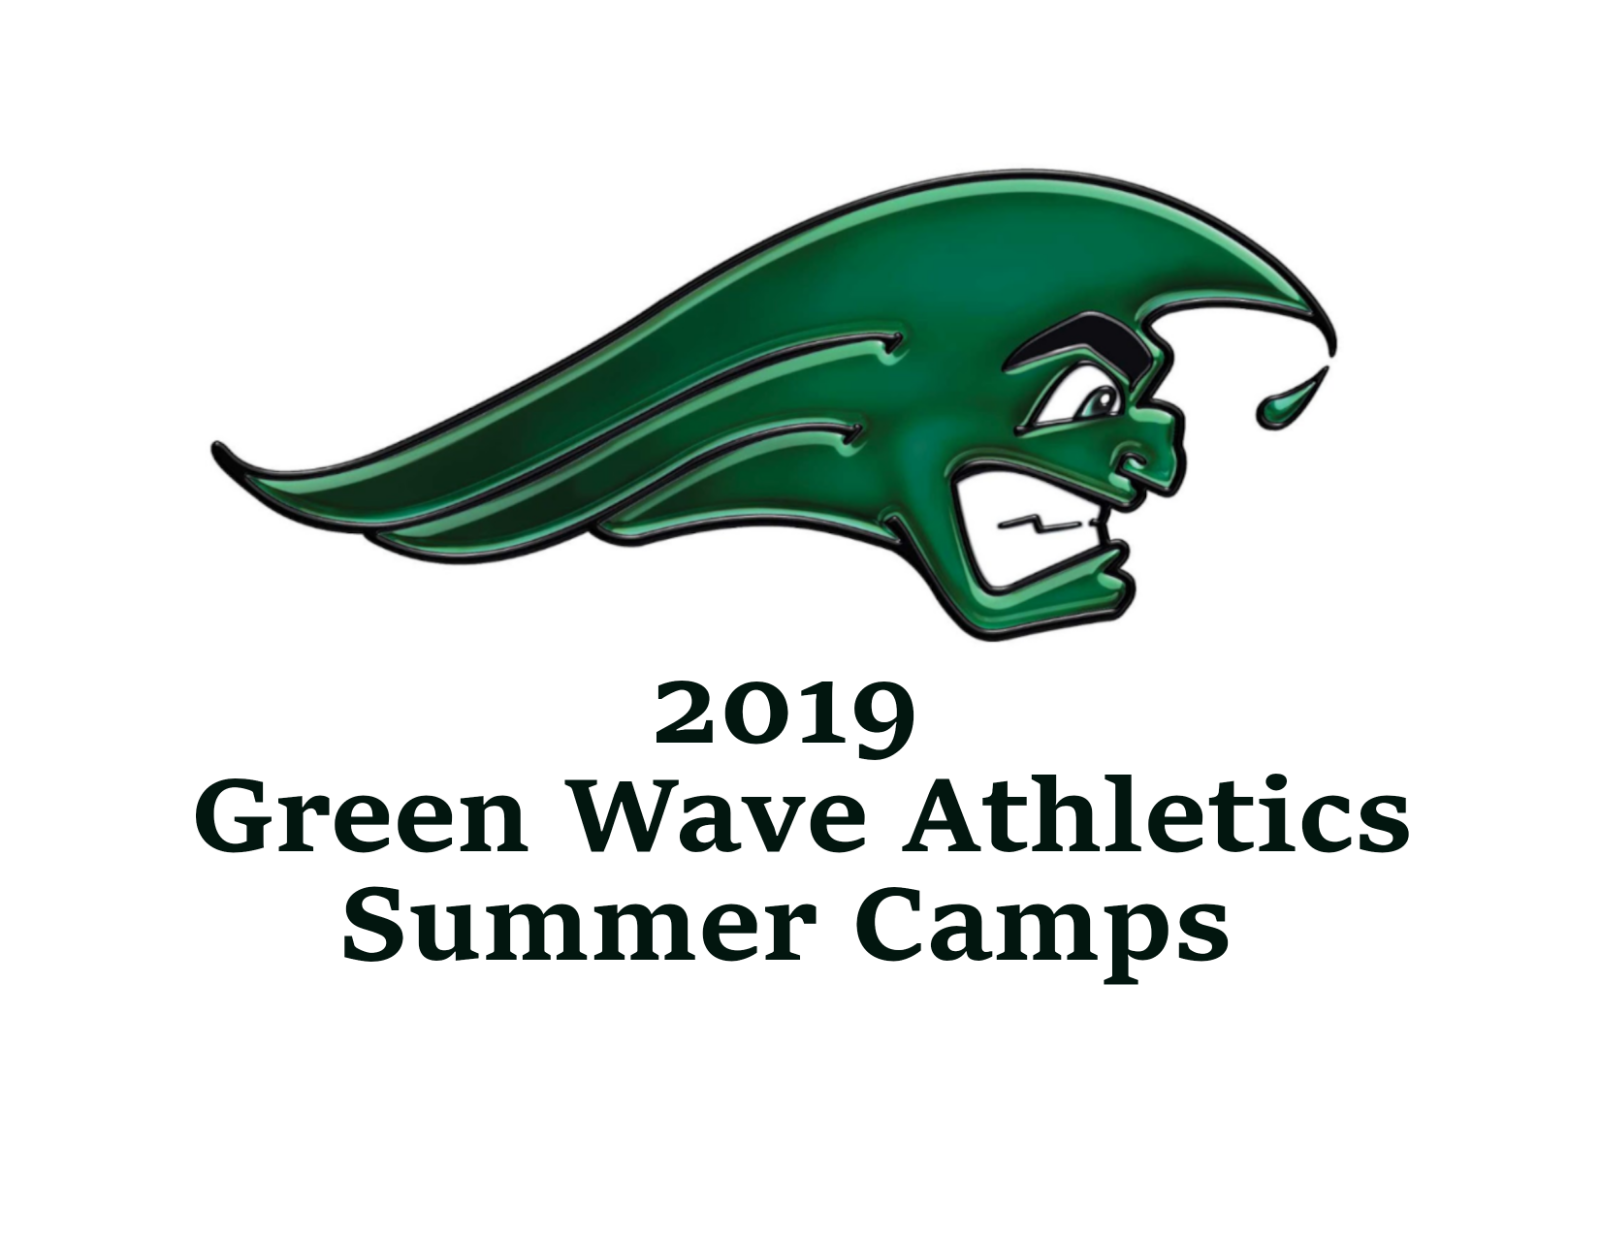 2019 Green Wave Athletics Summer Camps